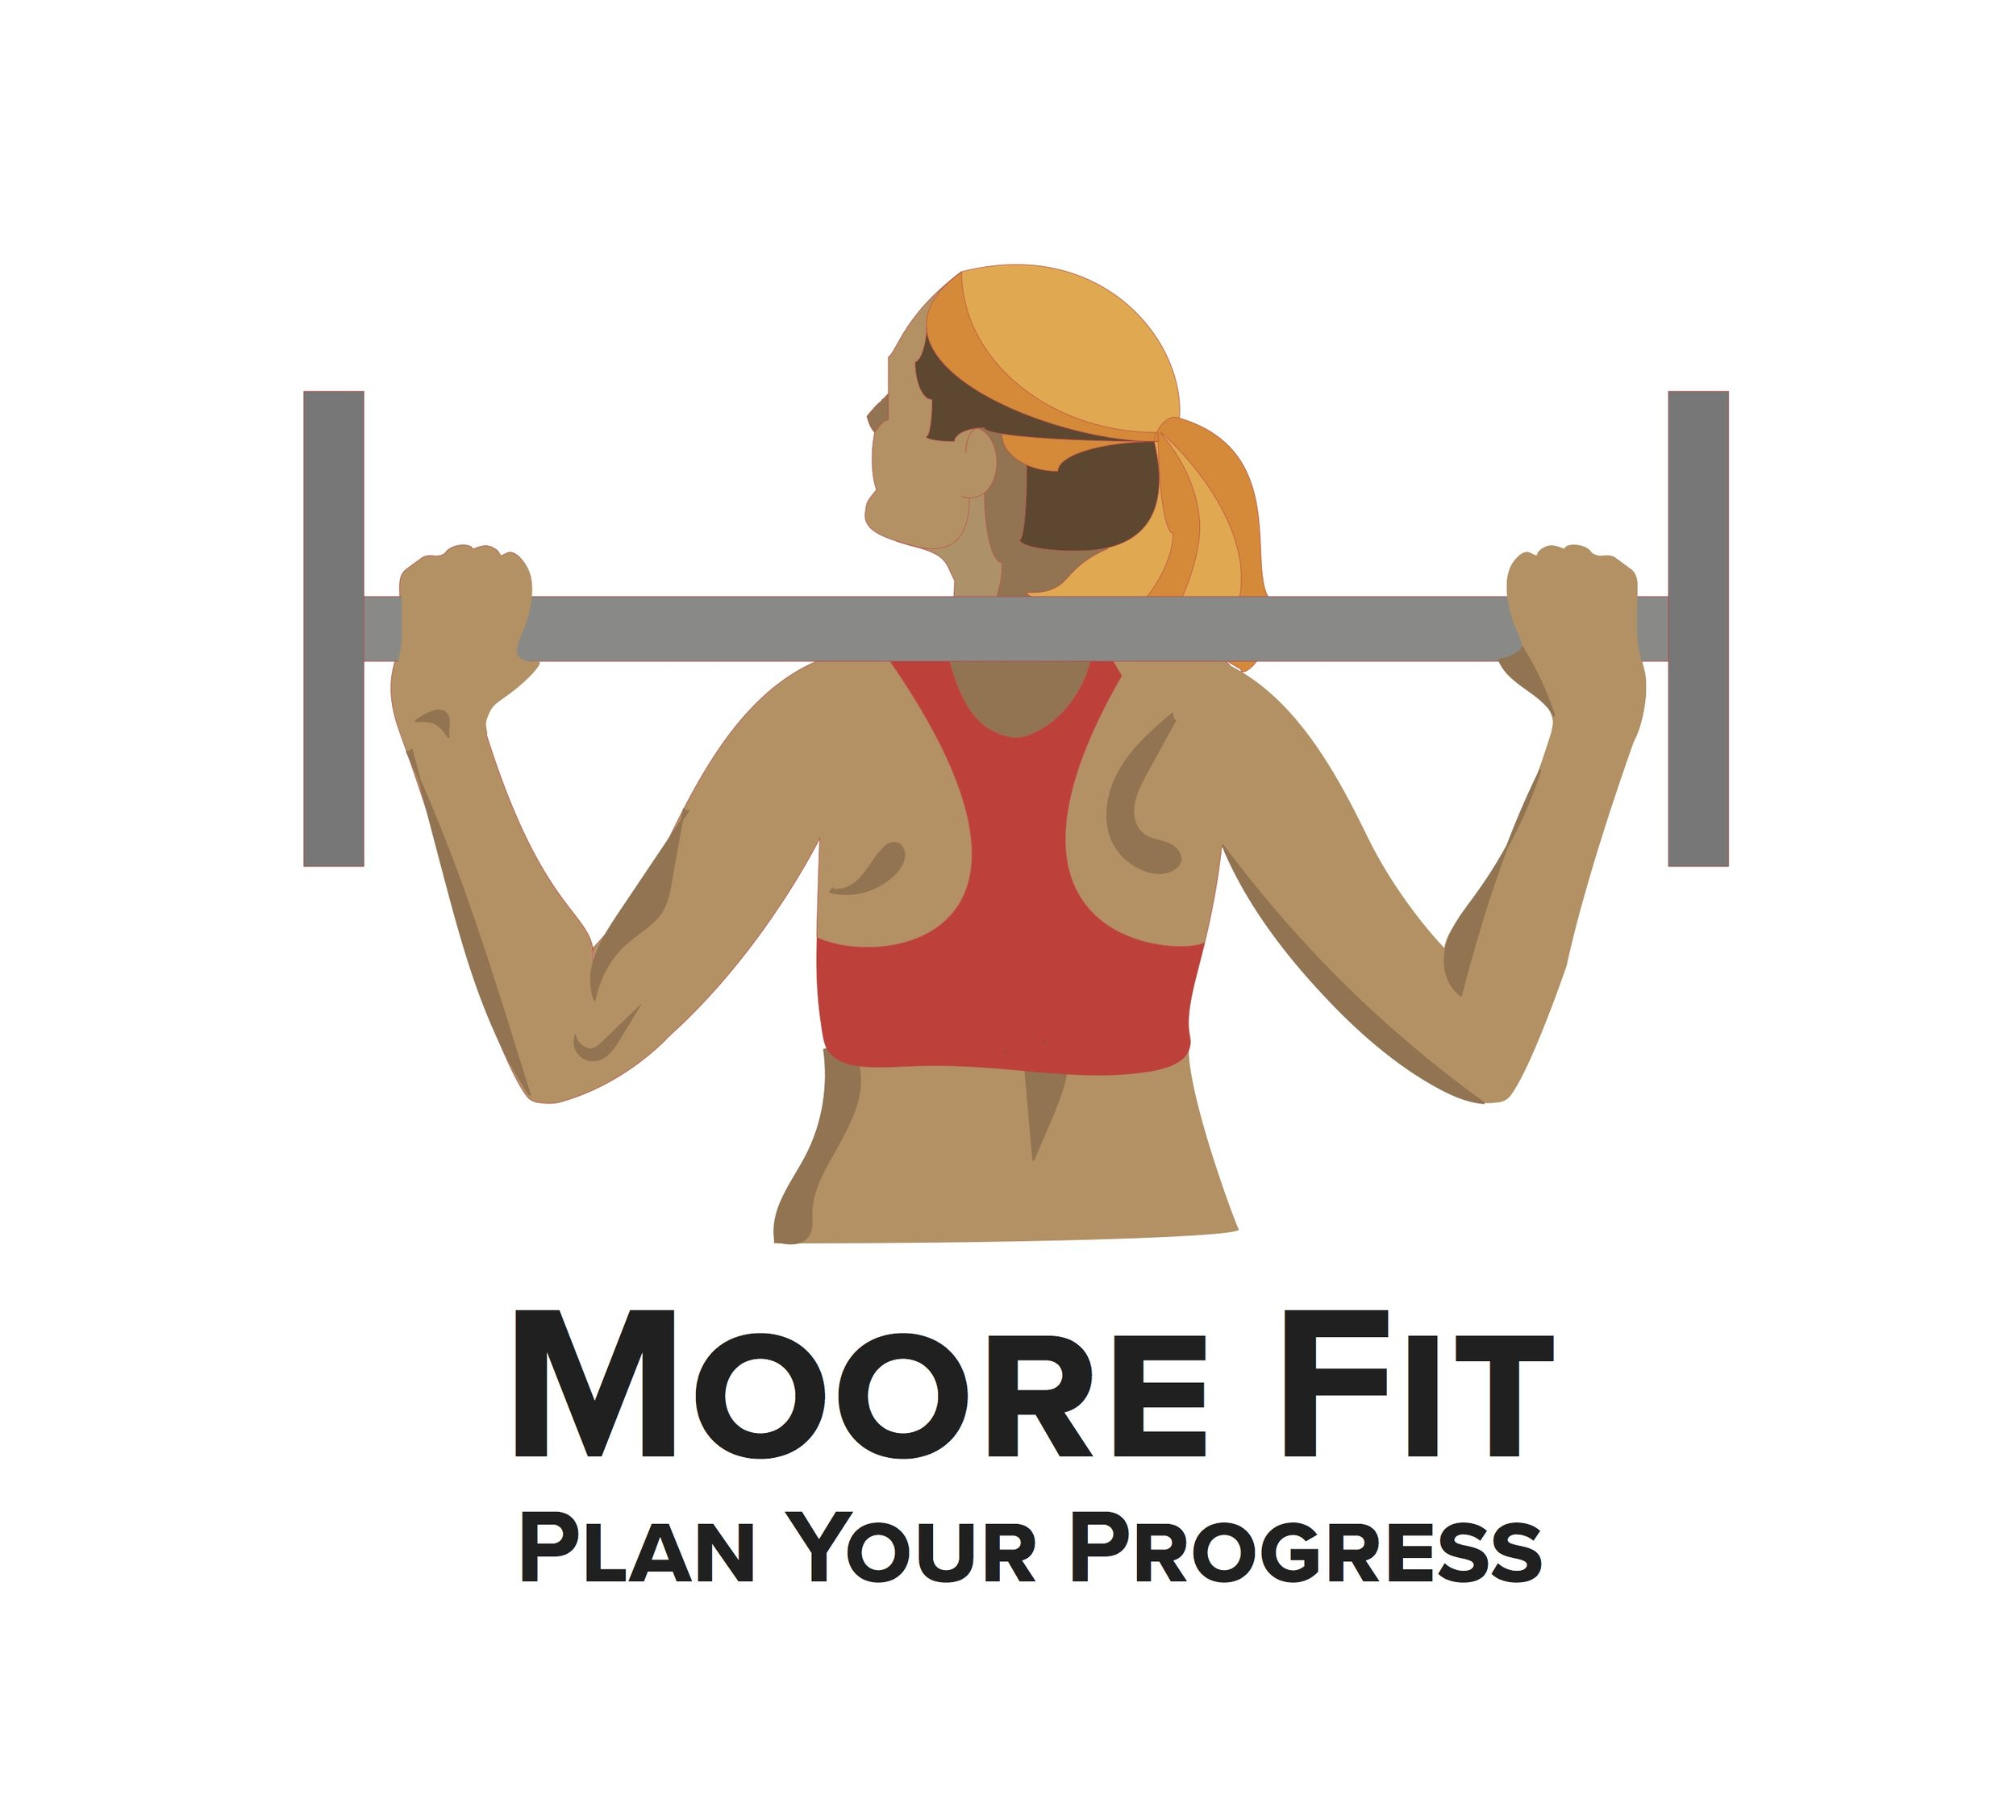 Moore FitFitness App - Moore Fit is an application I imagined based on personal training sessions with trainer Melissa Moore. The diverse fitness schedule among the pages and icons encourages a varied exercise routine, including strength and cardio training.Click on the image to see more of the project.